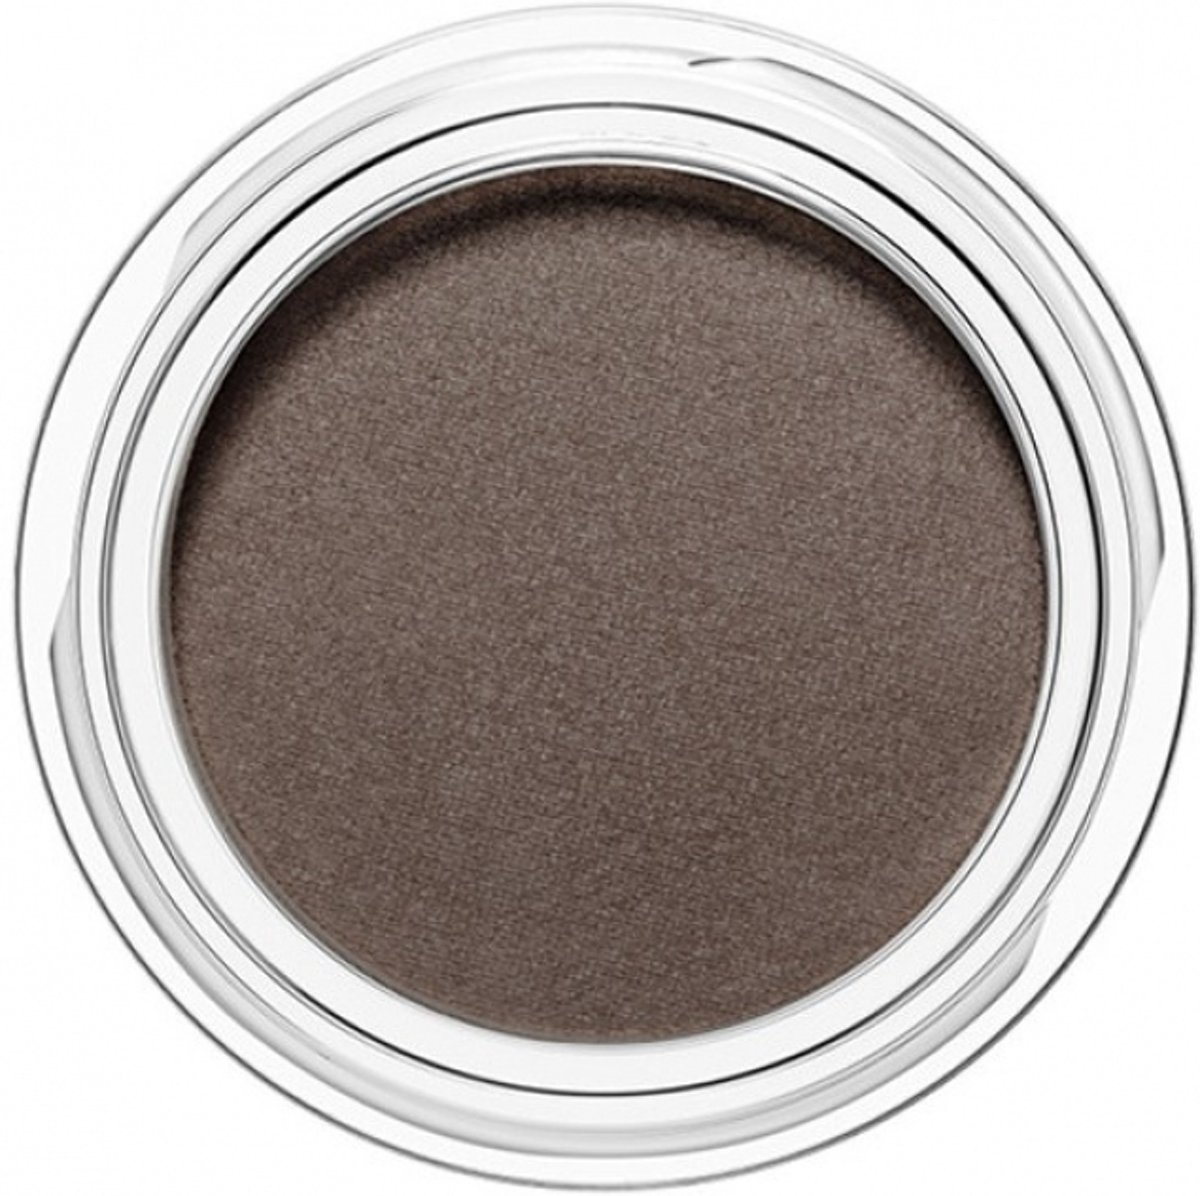 Clarins Ombre Matte Oogschaduw 7 gr. - 03 - Taupe